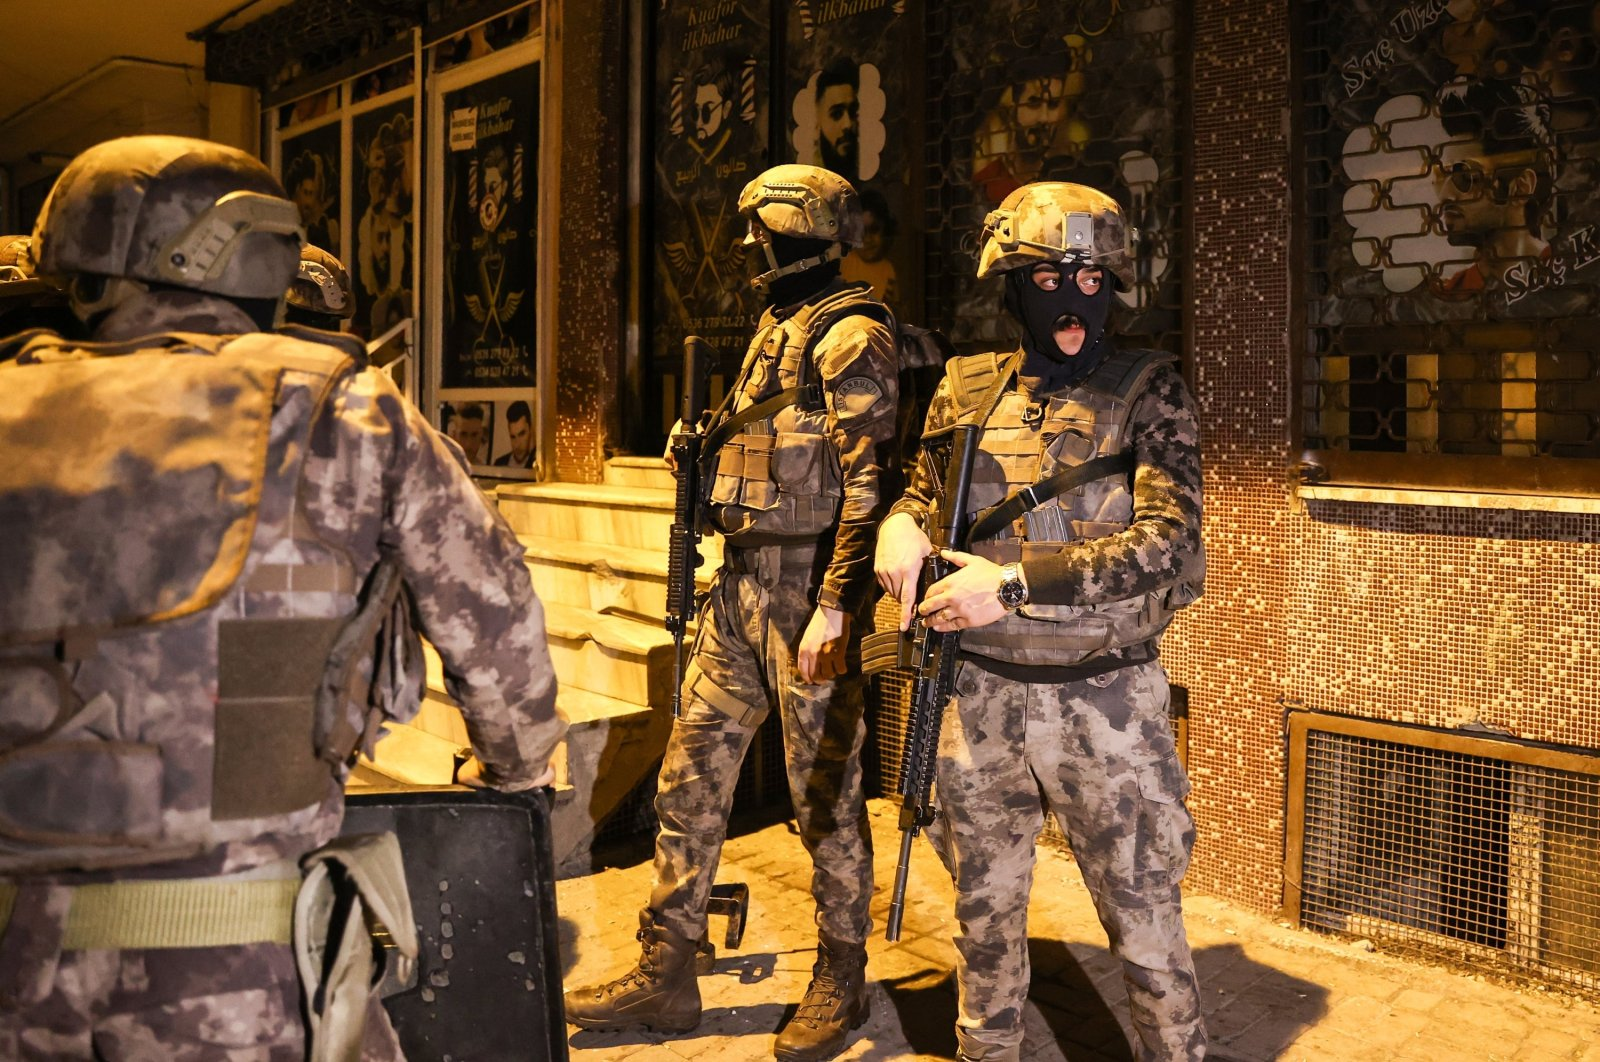 Turkish security forces conduct a raid to capture Daesh terrorists in Istanbul, Turkey, Dec. 30, 2020. (AA Photo)